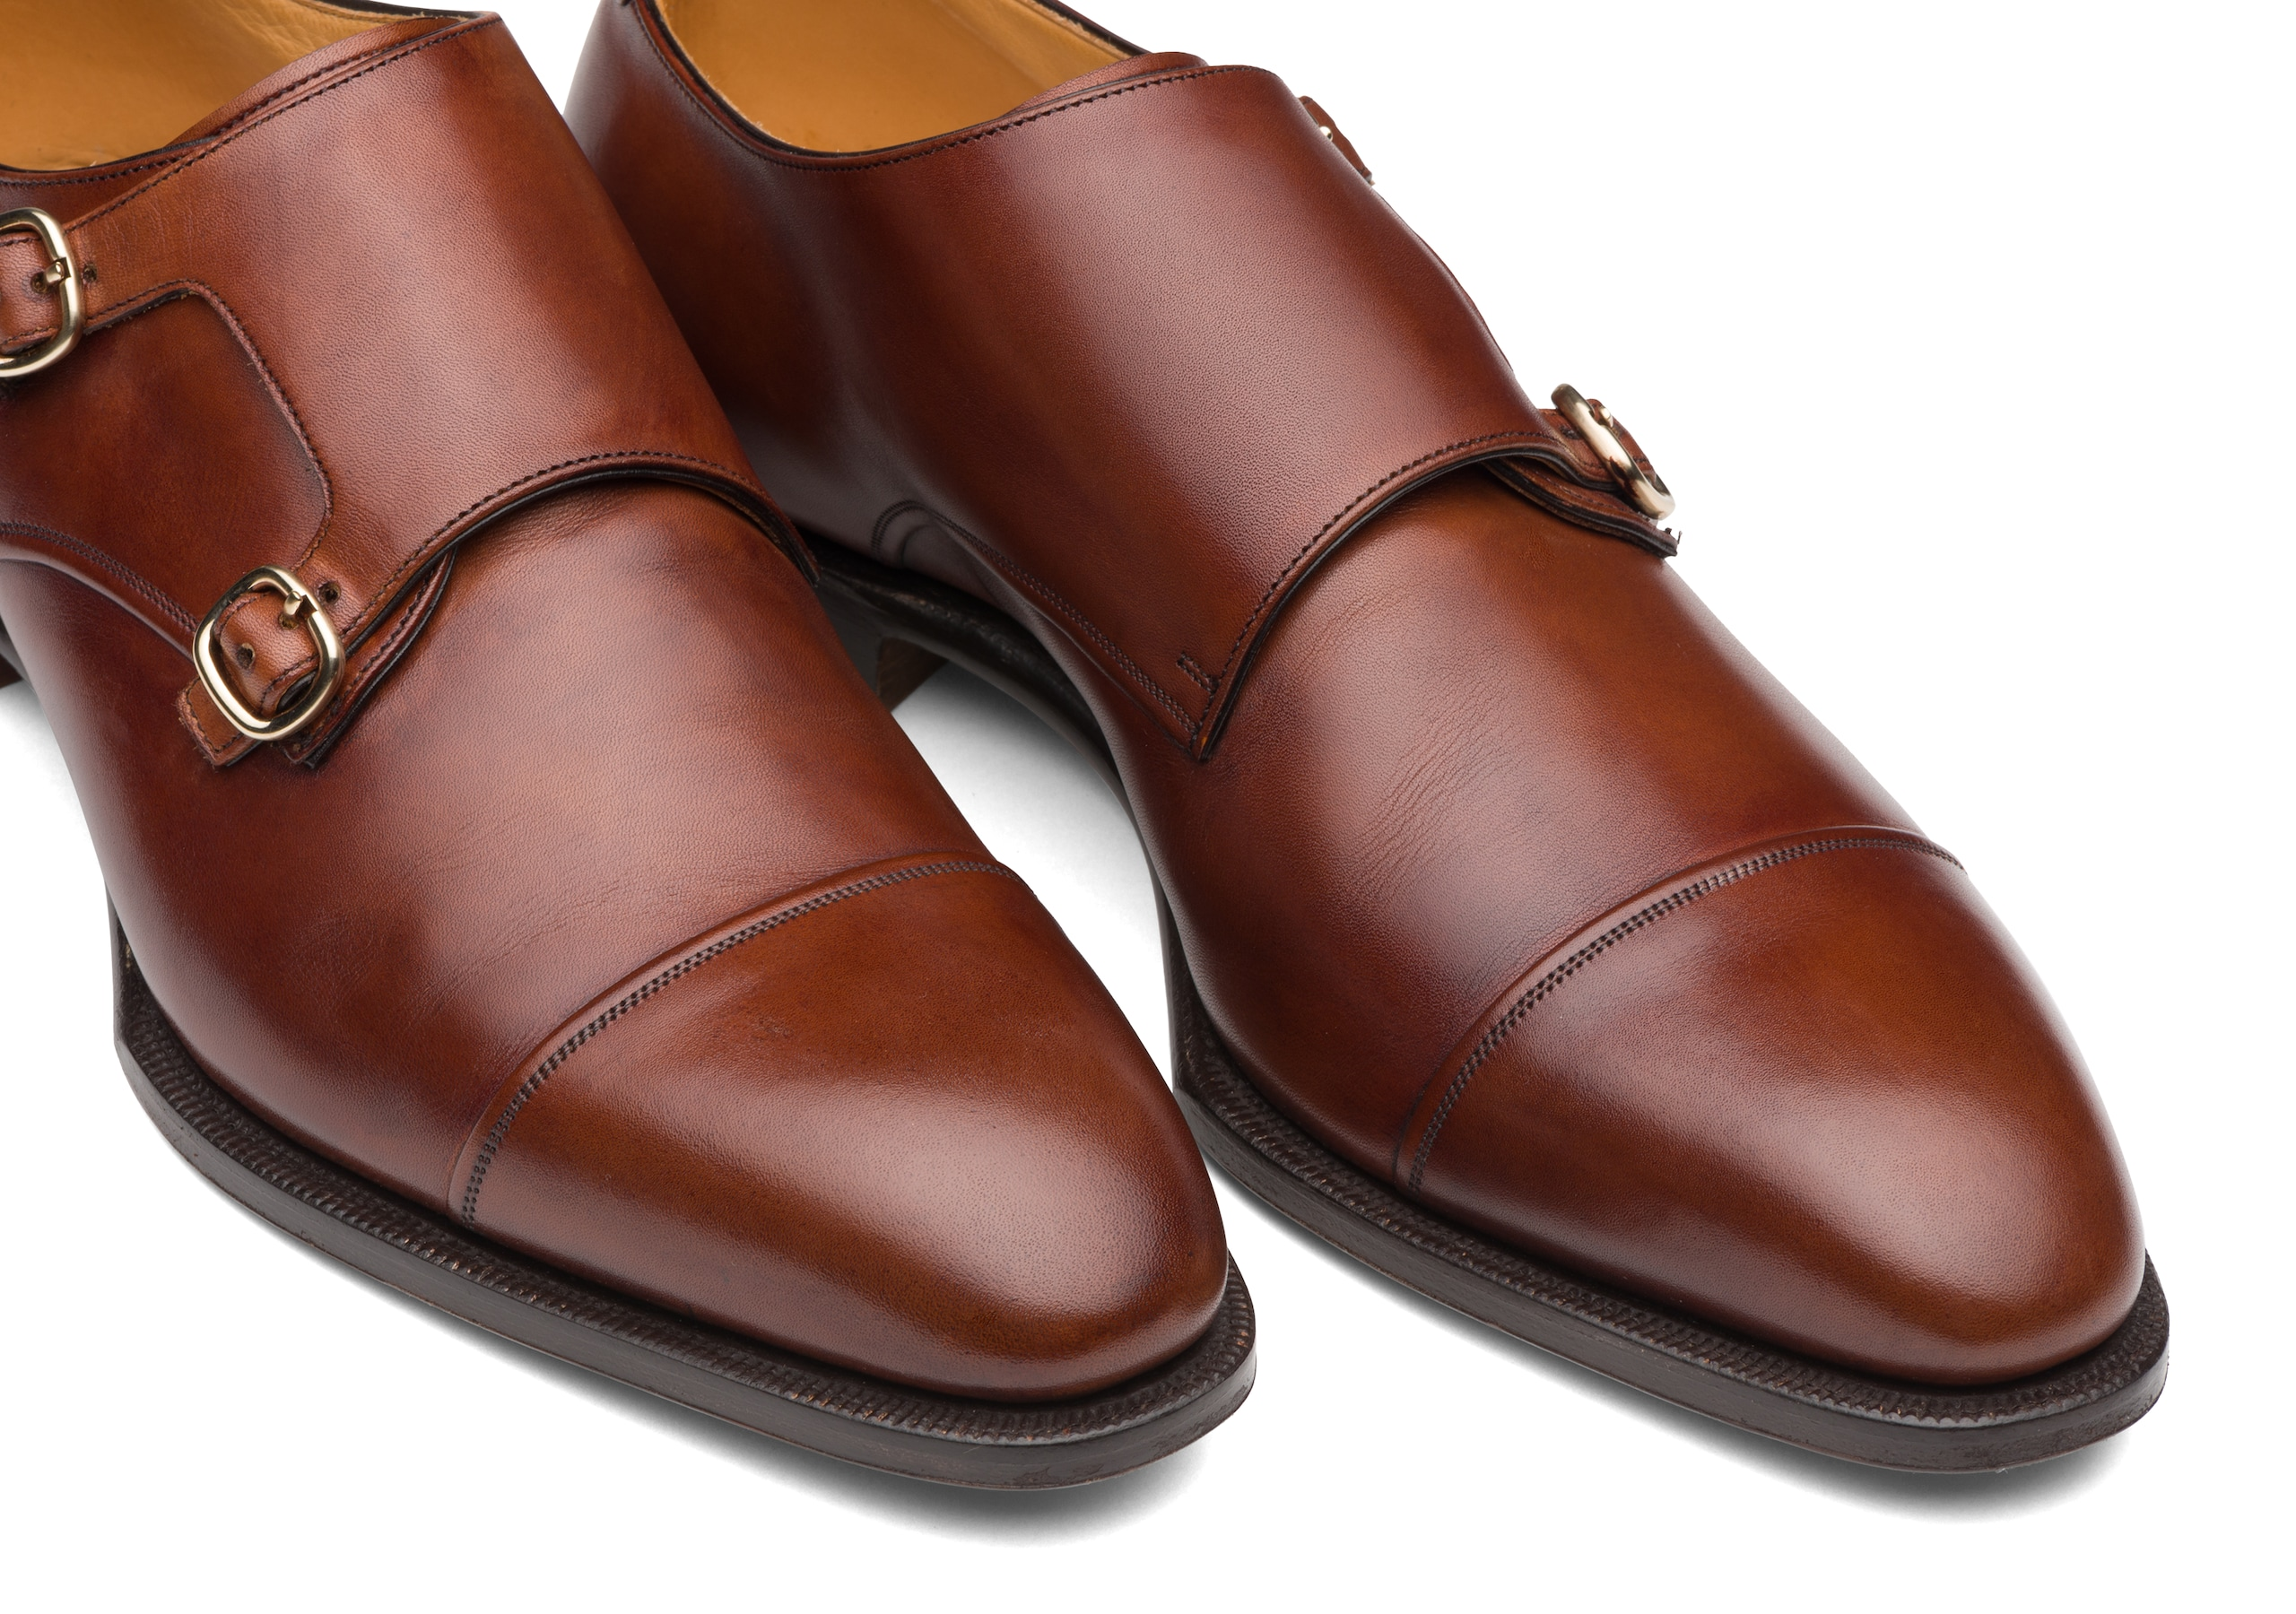 Coleridge Church's Doha Leather Monk Strap Brown Brown